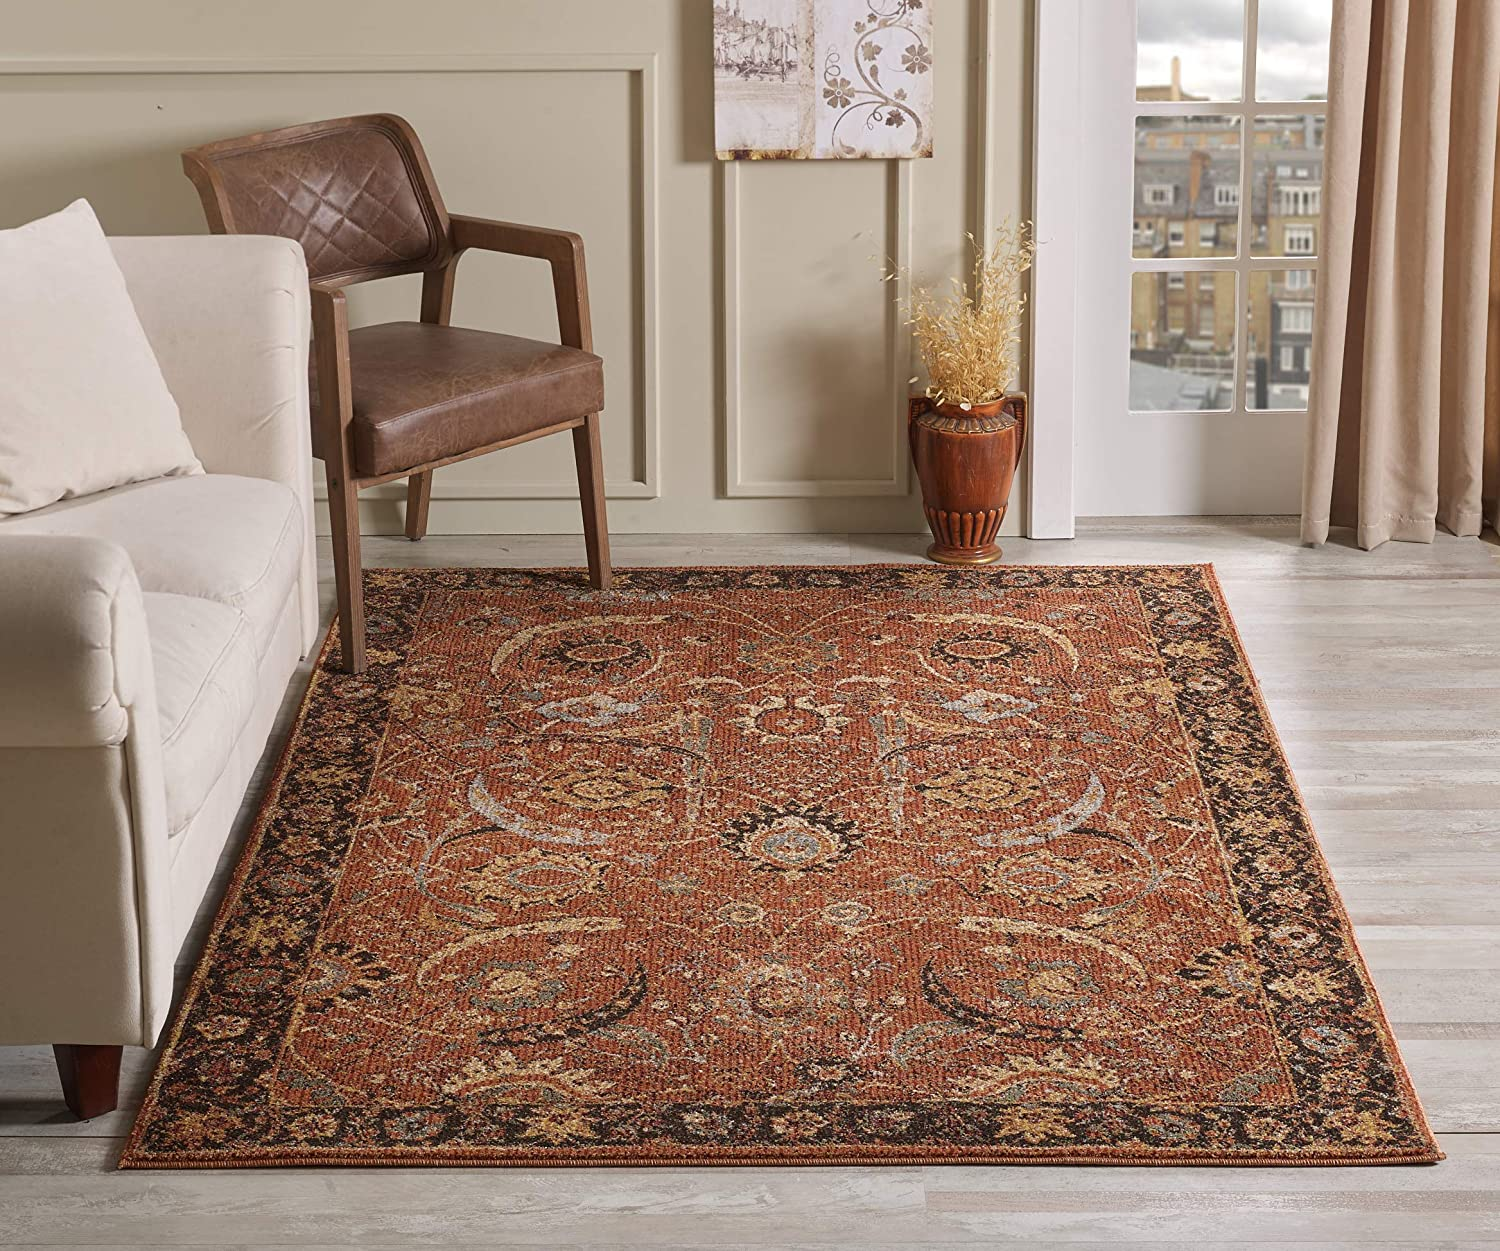 Golden Rugs Area Rug 4x6 Terra Traditional Bedroom Living room Dining  Swirls Carpet Oriental Vintage Persian Floral Texture Hand Touch Texture  6909 ...